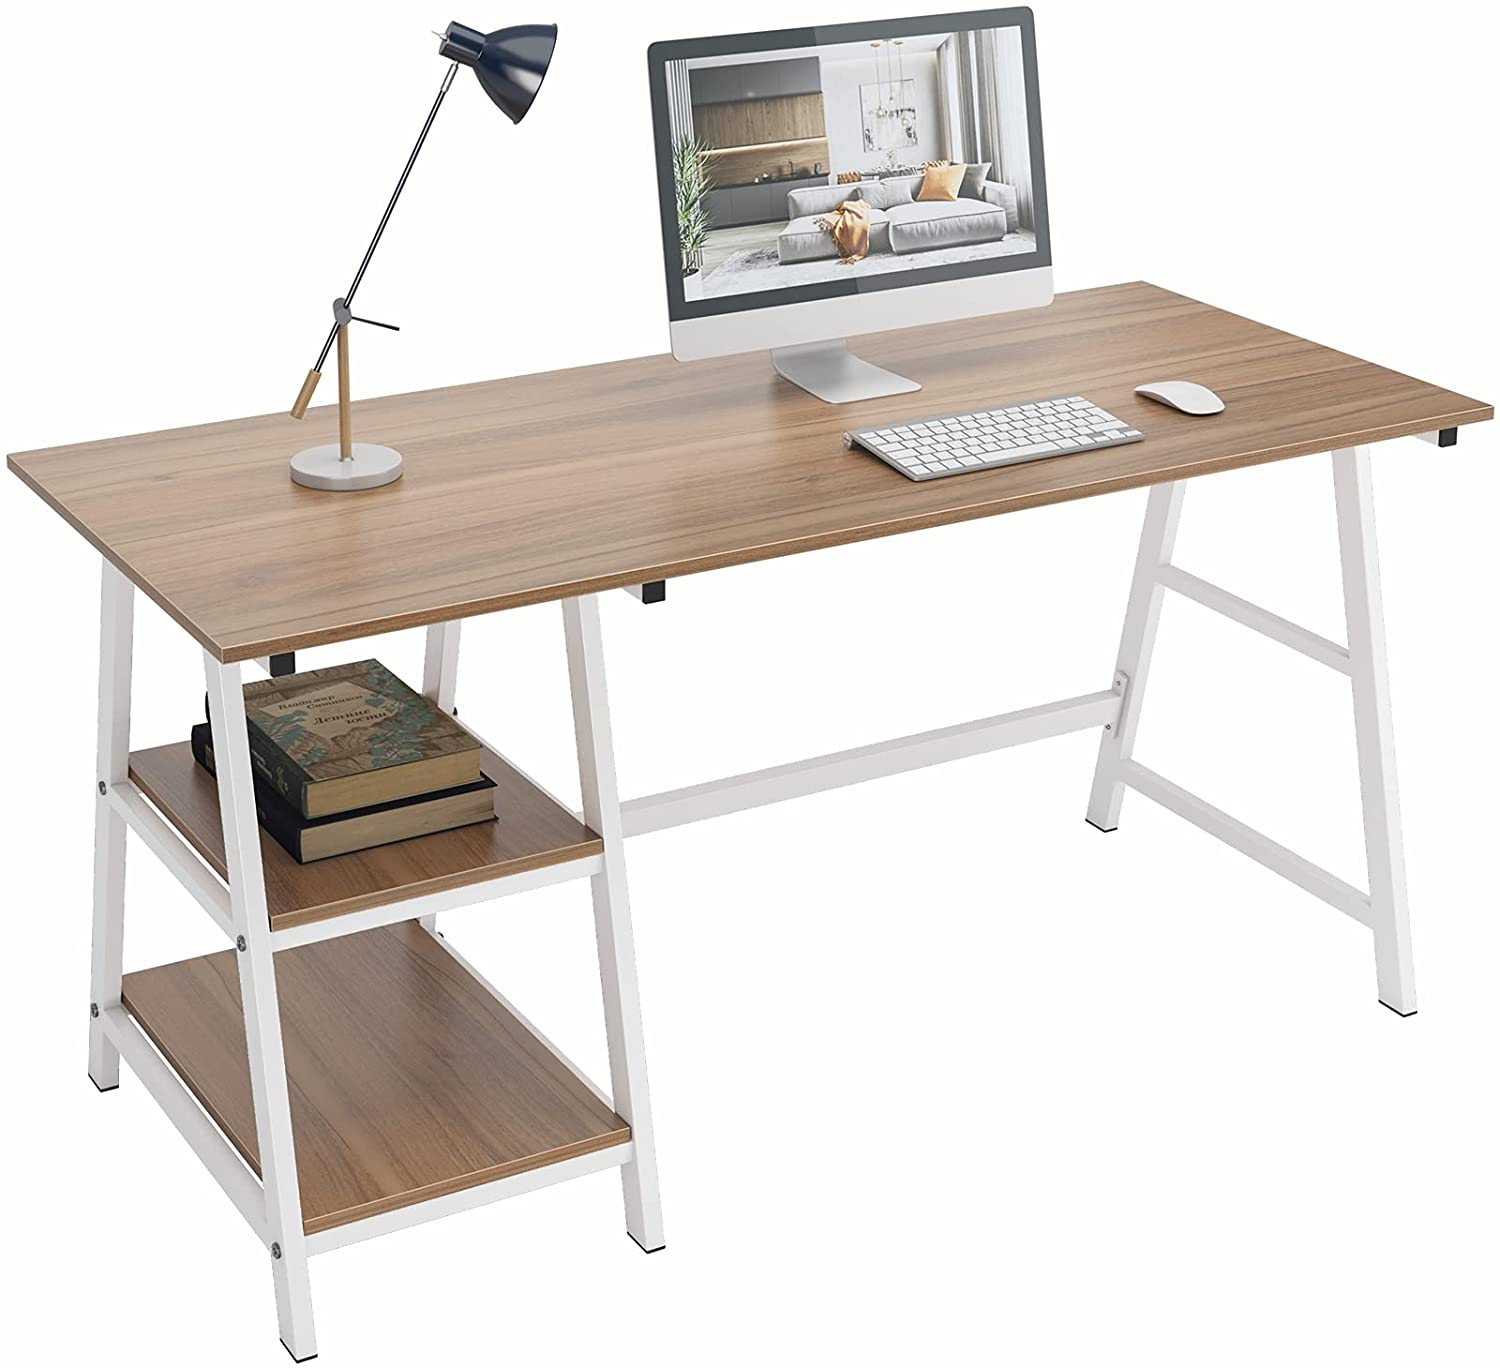 DlandHome Computer Desk with Storage Shelf, Trestle Desk, Home Office Desk/Workstation/Writing Table with Opening Shelves, Tplus (55 inches, Oak)